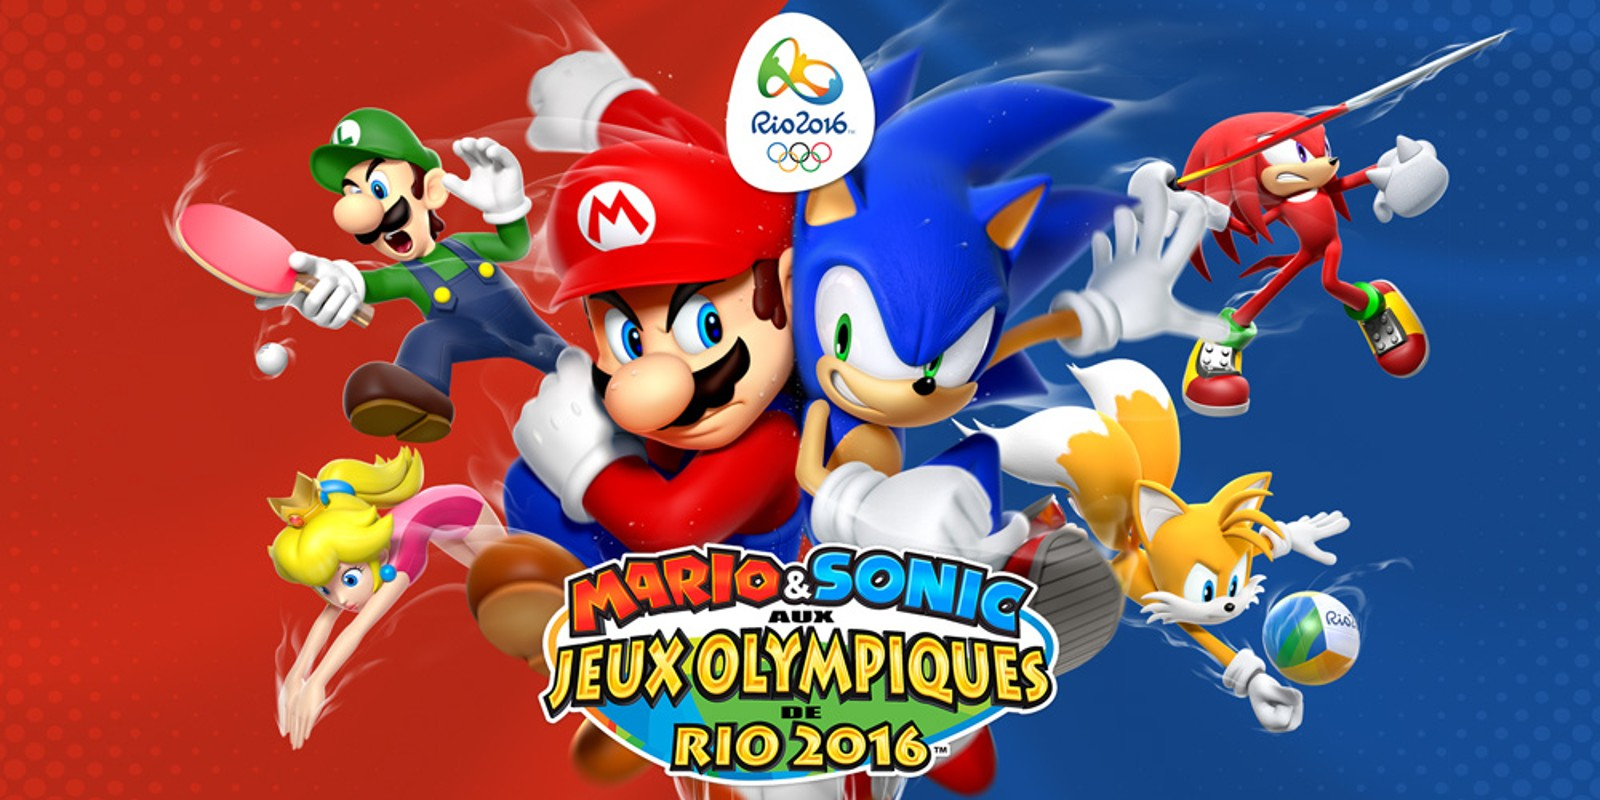 mario sonic aux jeux olympiques de rio 2016 nintendo 3ds jeux nintendo. Black Bedroom Furniture Sets. Home Design Ideas